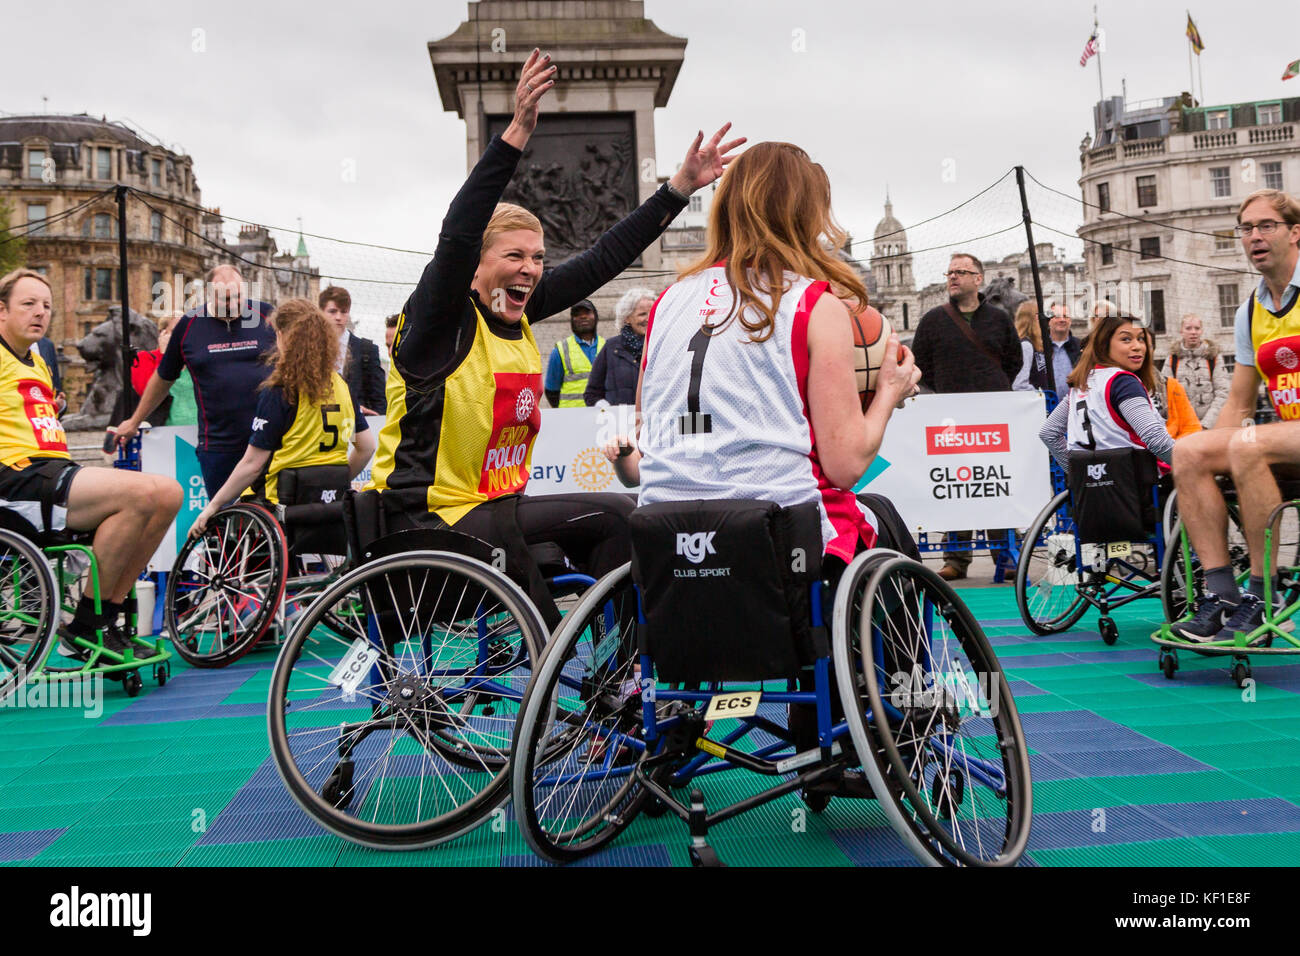 London, UK. 24th October, 2017. Conservative MP's Baroness Vere and Gillian Keegan on opposite sides in a Wheelchair - Stock Image